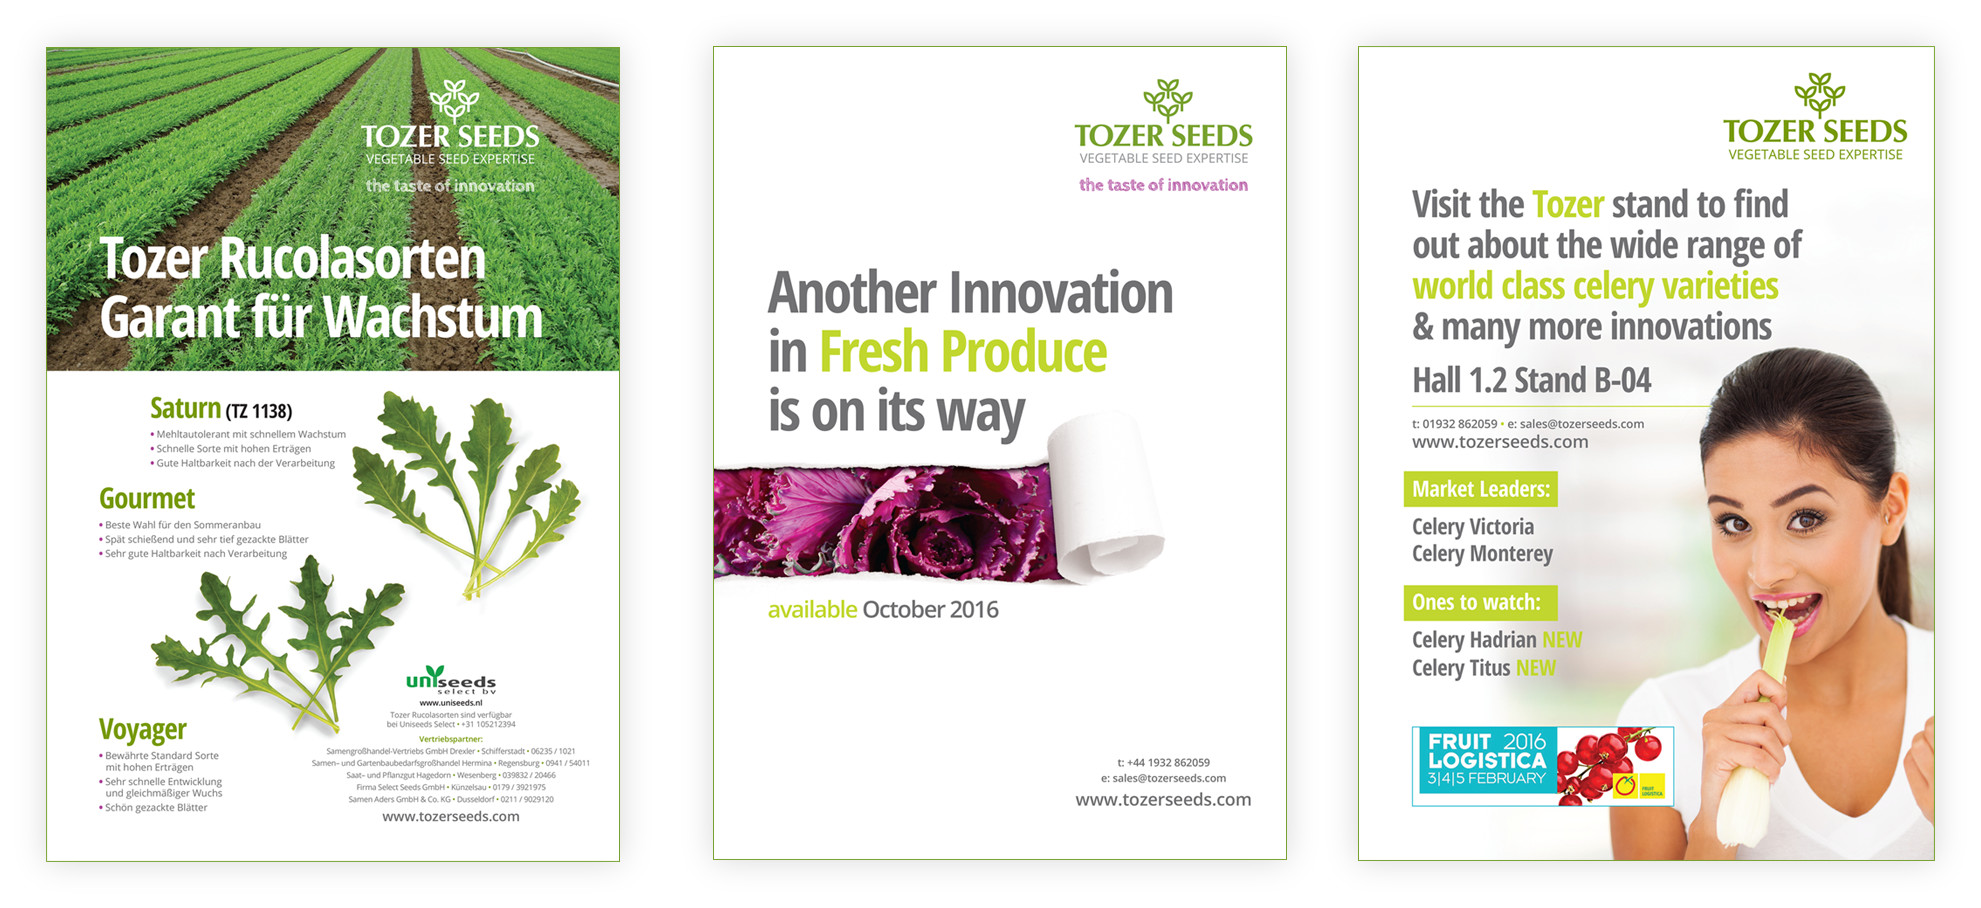 Tozer Seeds branding on printed literature